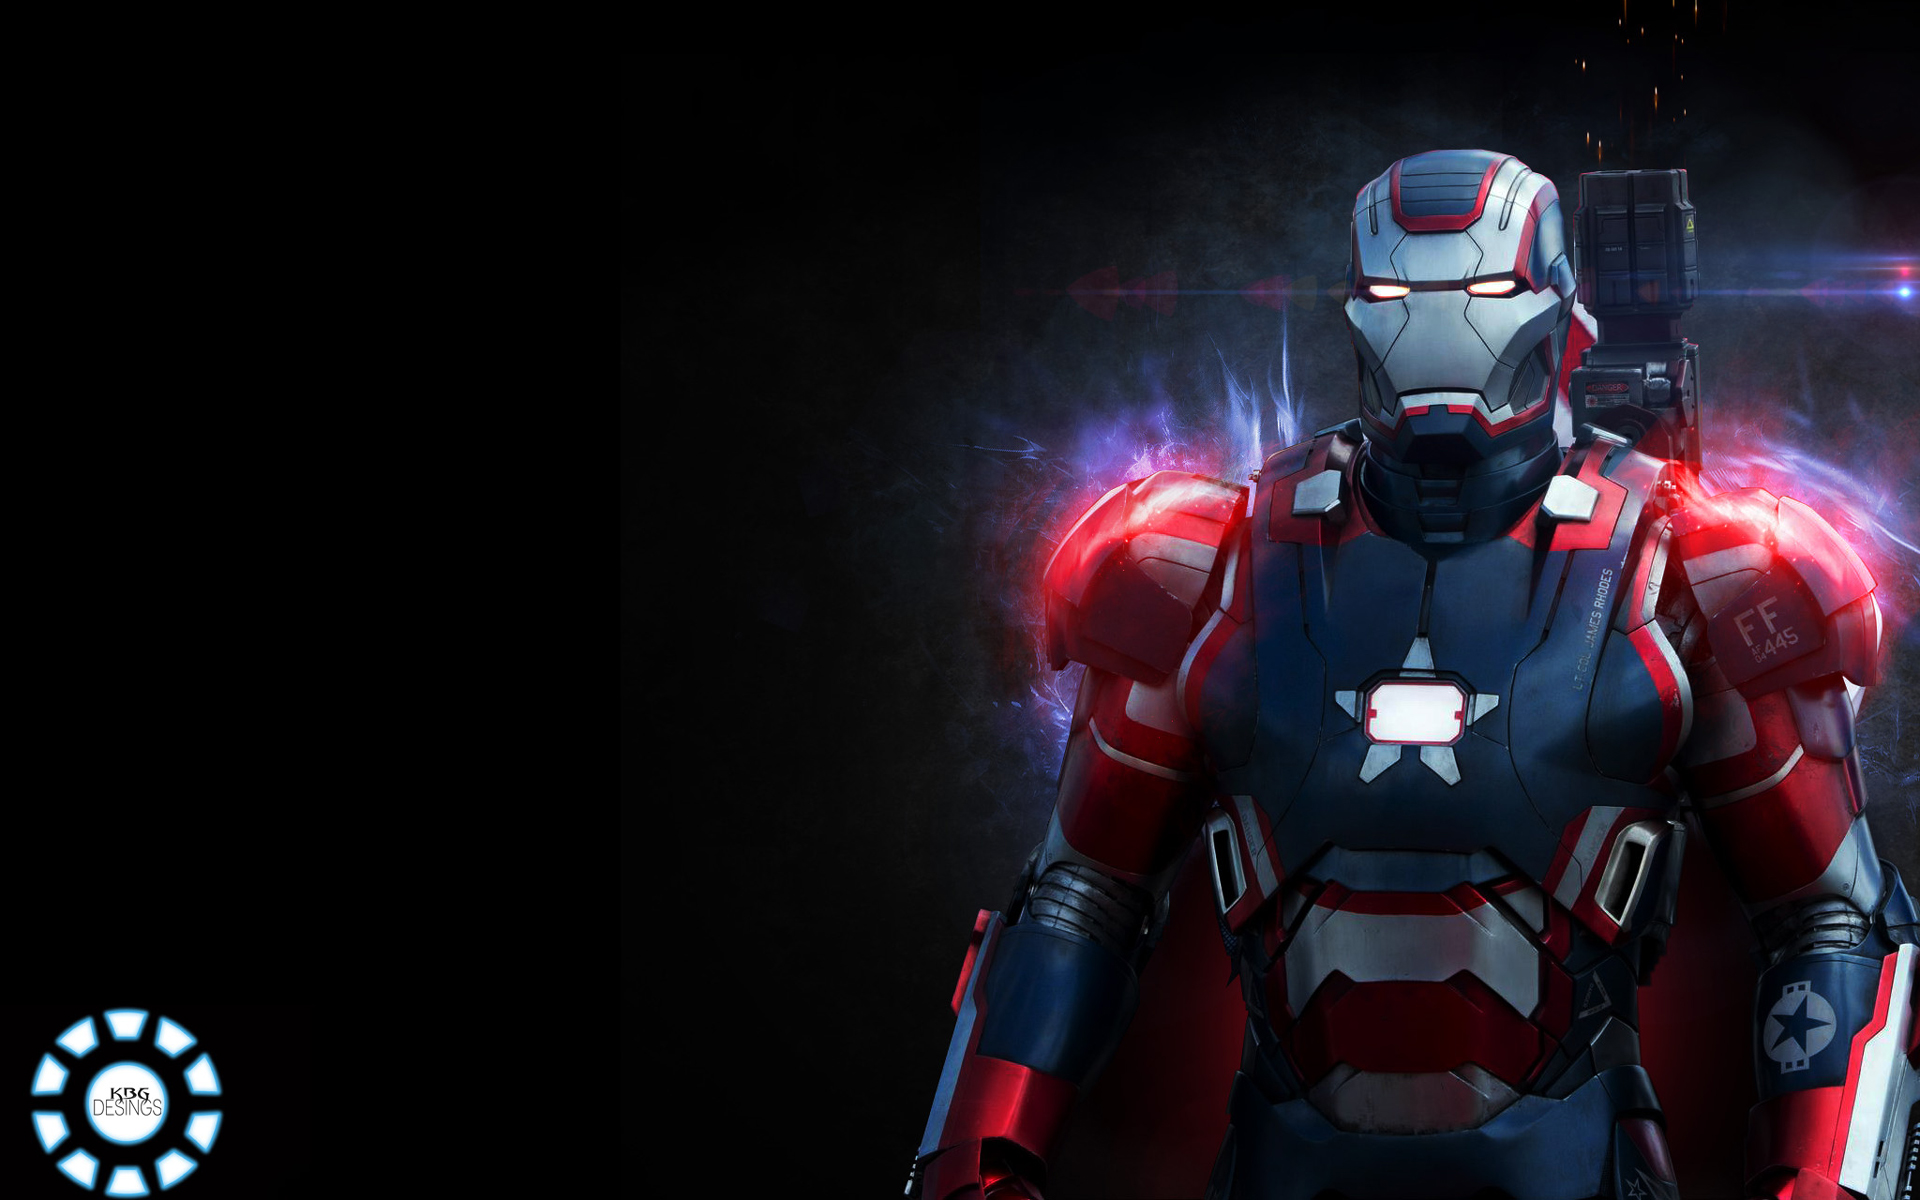 Source httpdownloadwallpaperhdcomiron man 3 hd wallpaper 1920x1200